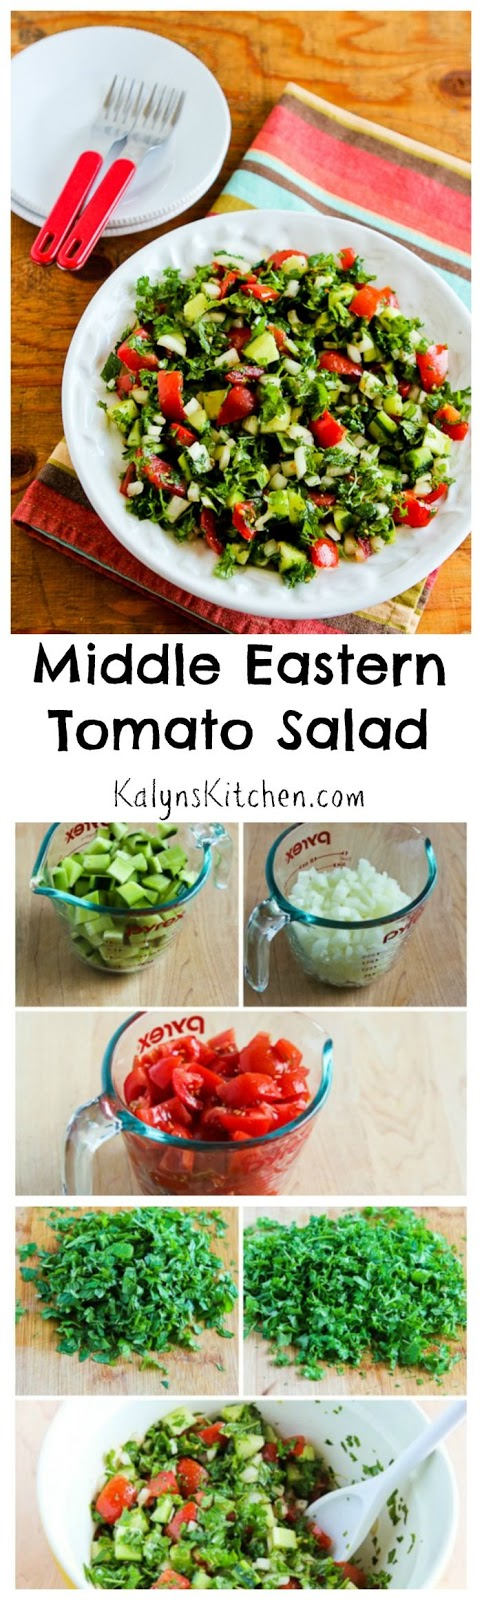 Middle Eastern Tomato Salad (Video) – Kalyn's Kitc